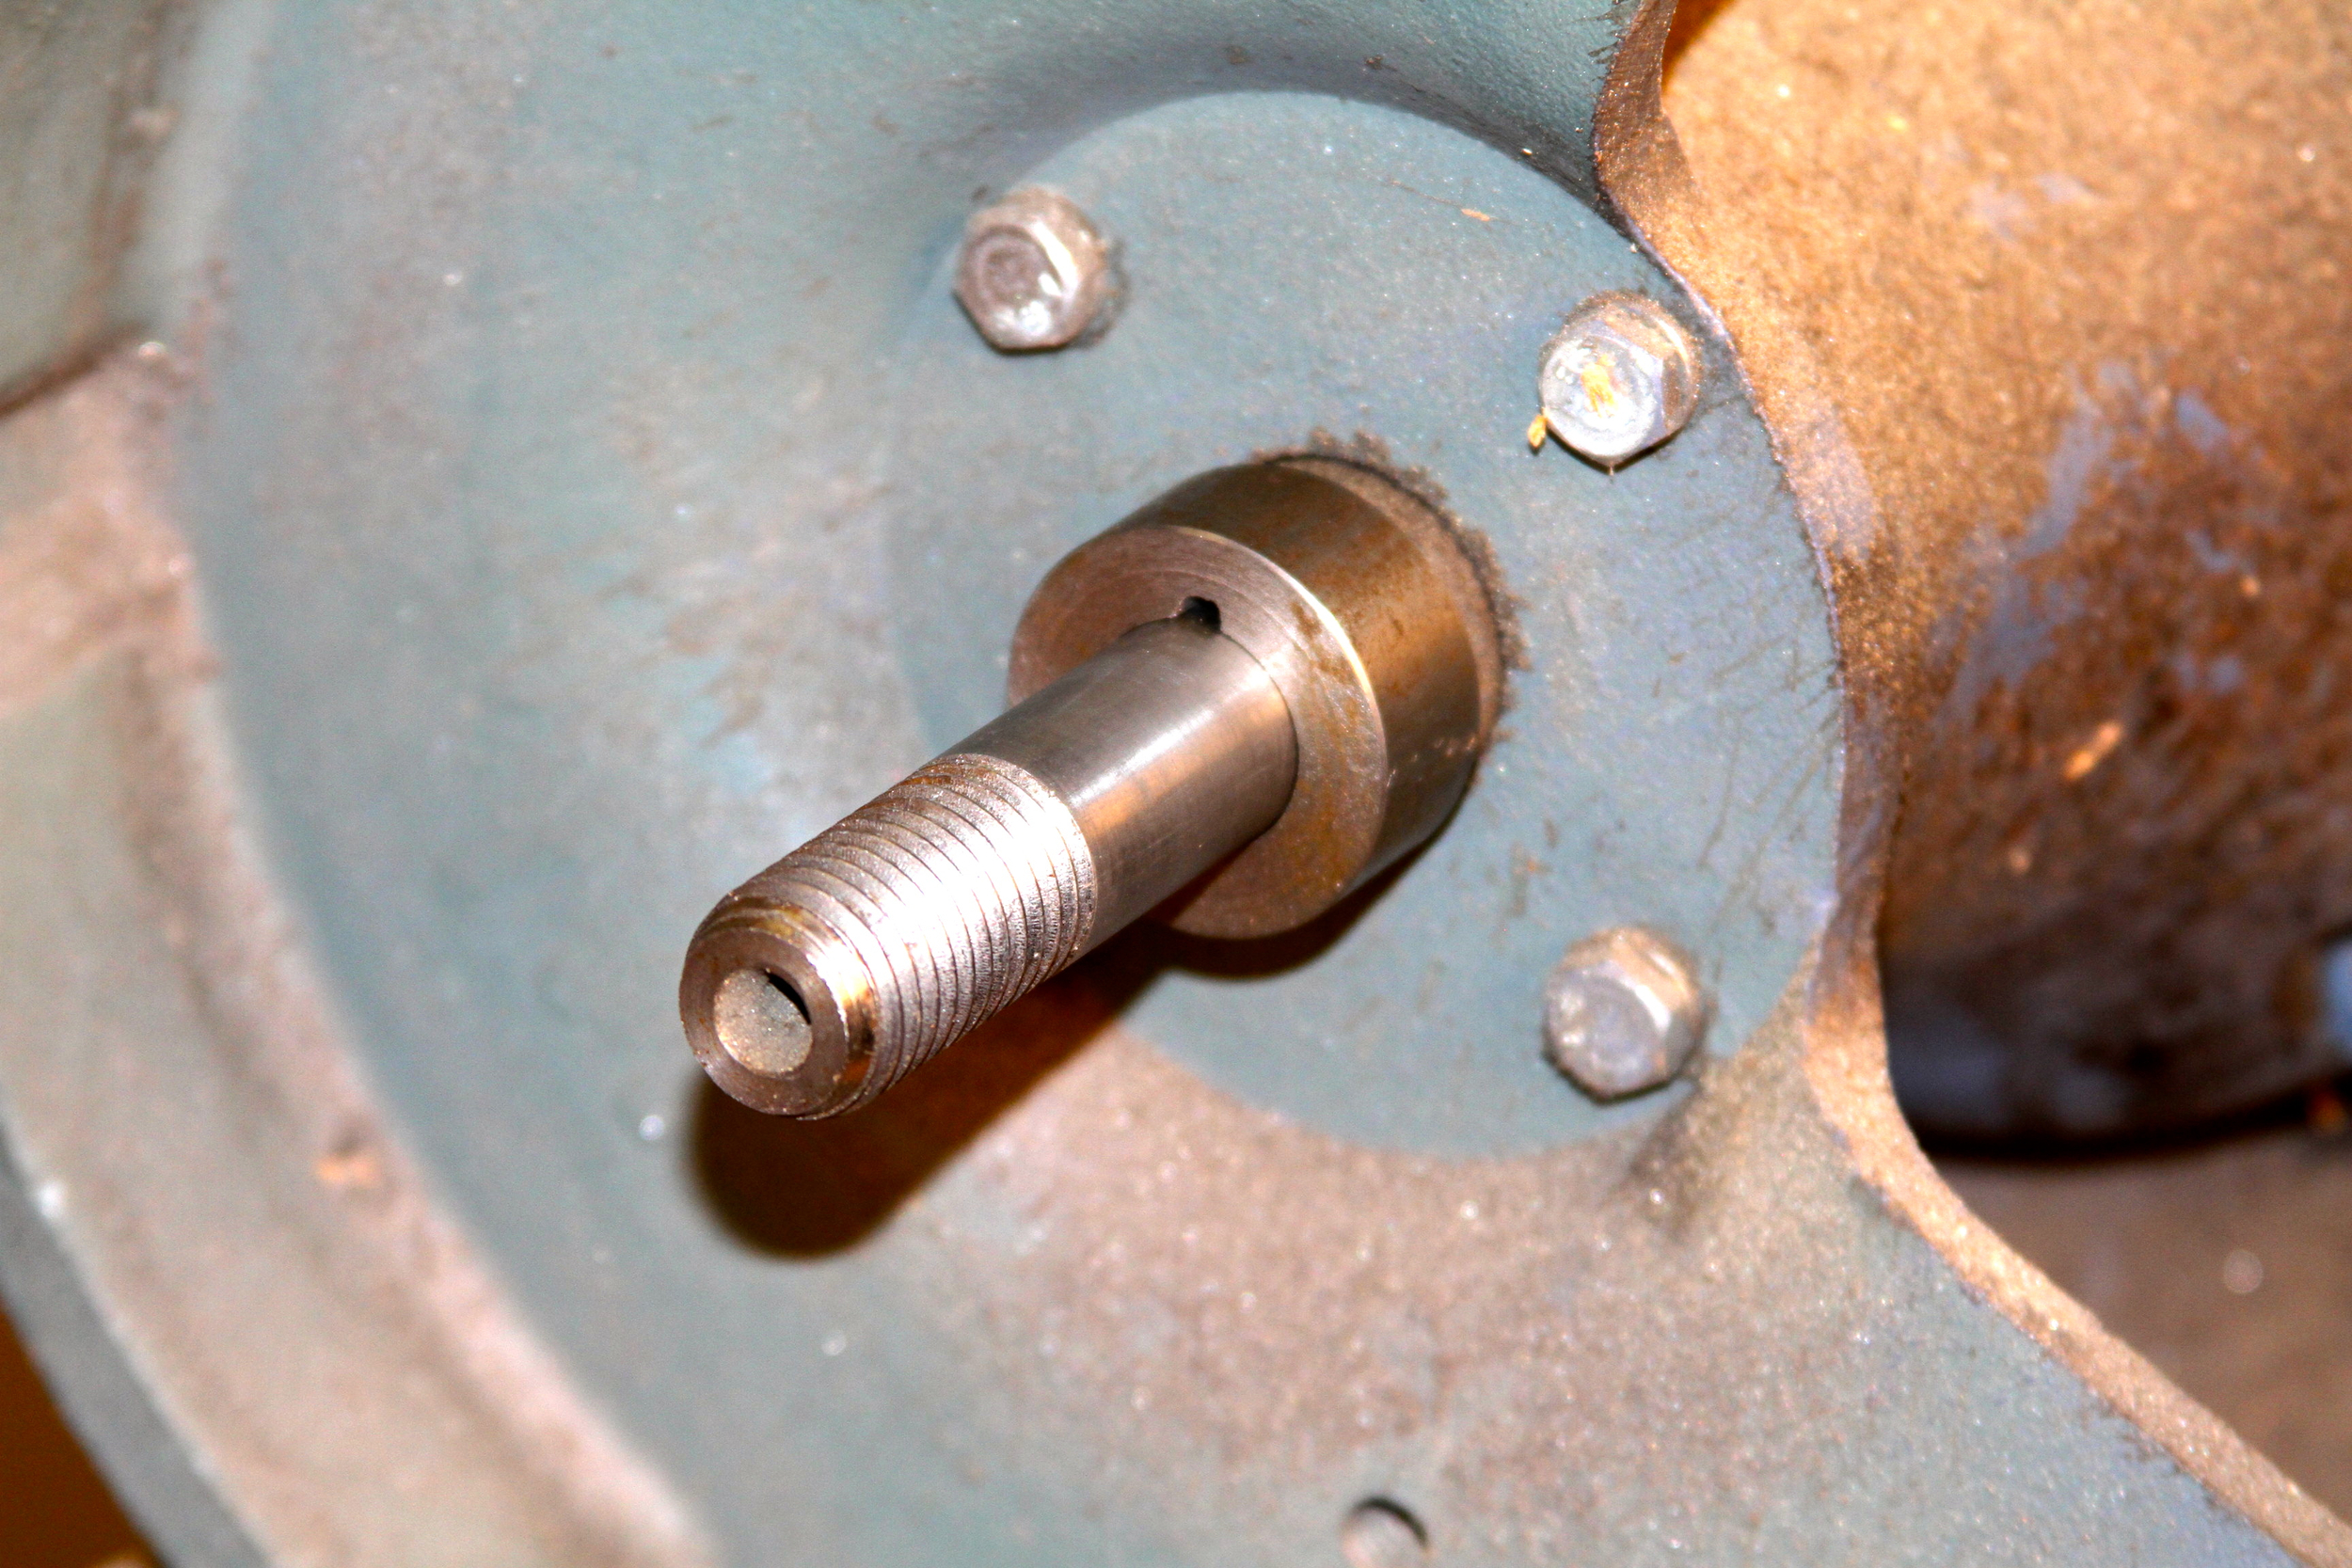 Machined washer with groove /keyway for fitting over the pin on the shaft